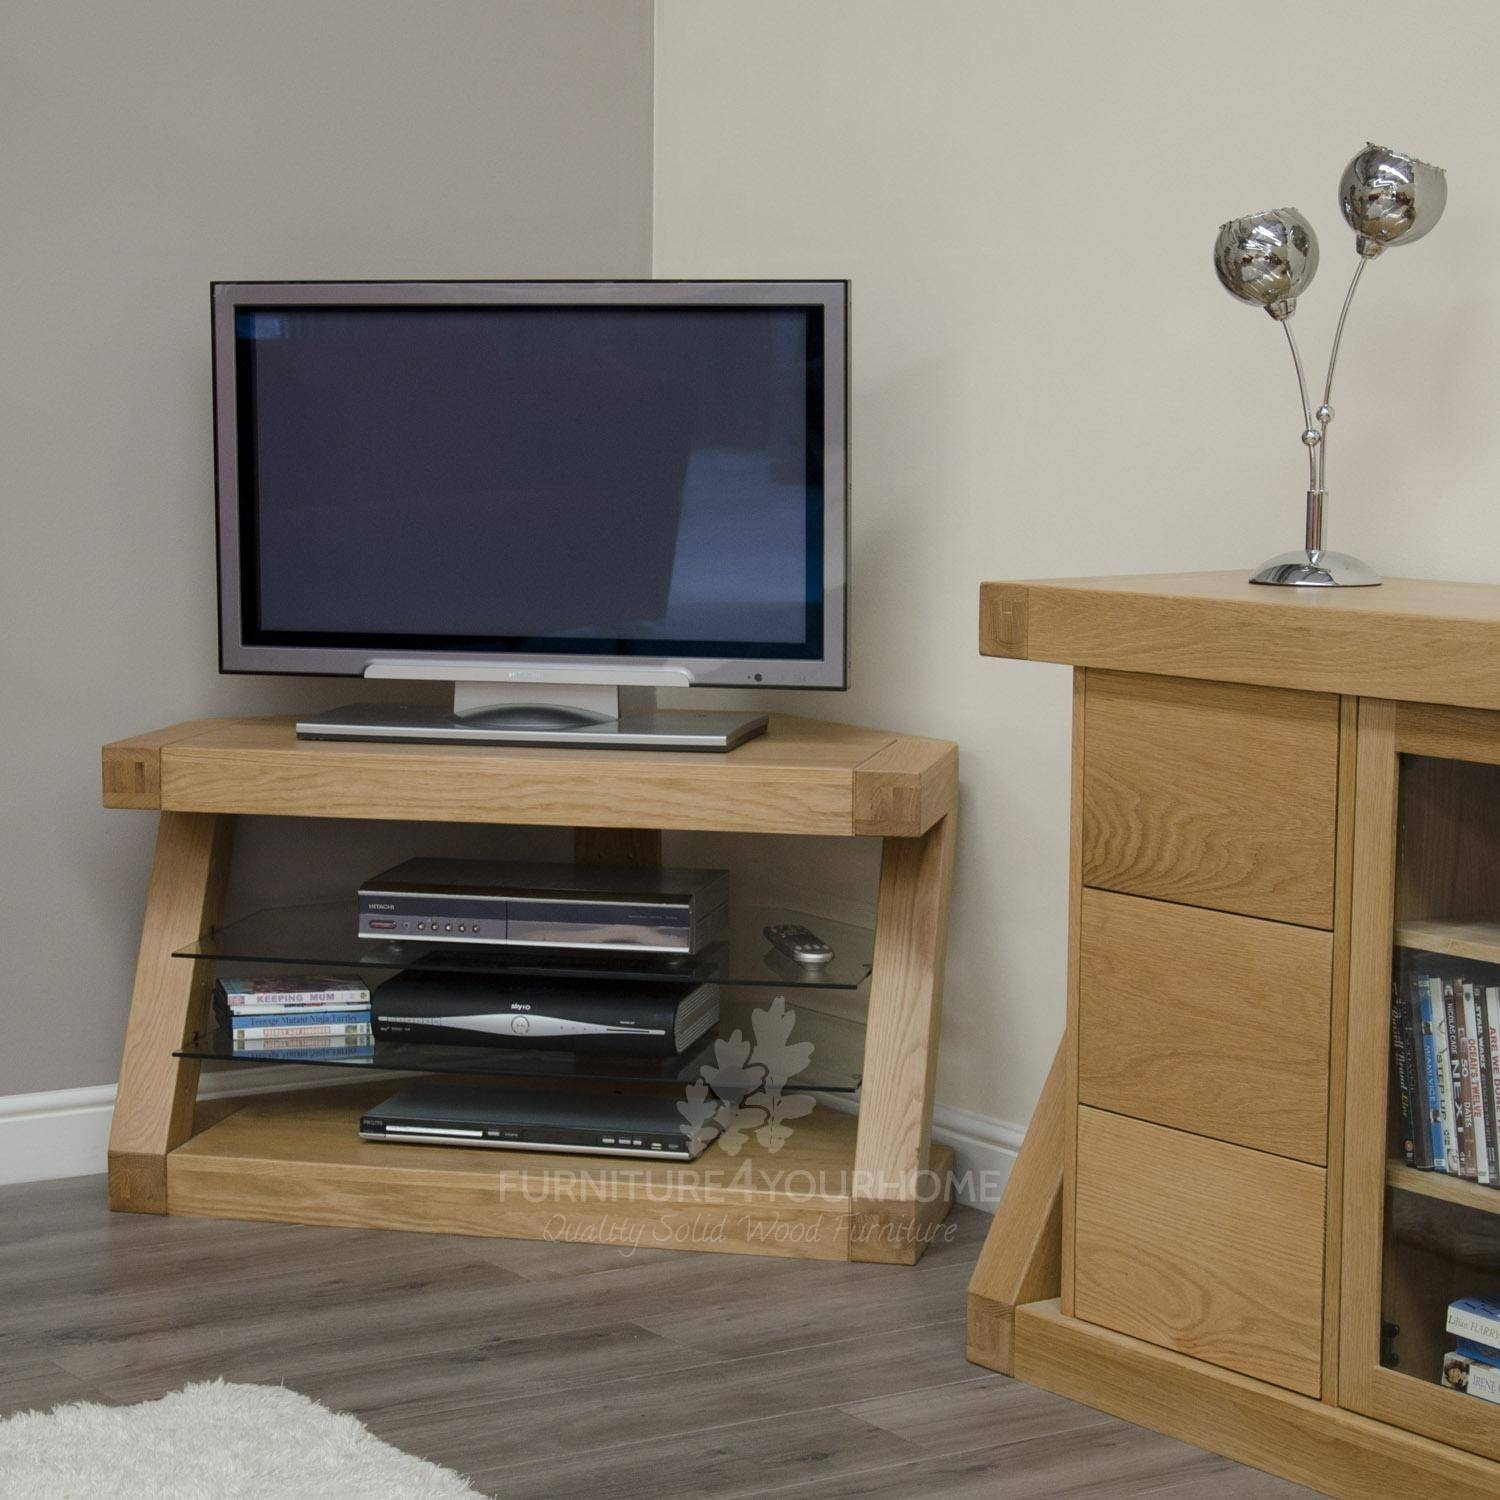 Z Solid Oak Designer Corner Tv Unit | Furniture4Yourhome regarding Glass And Oak Tv Stands (Image 15 of 15)